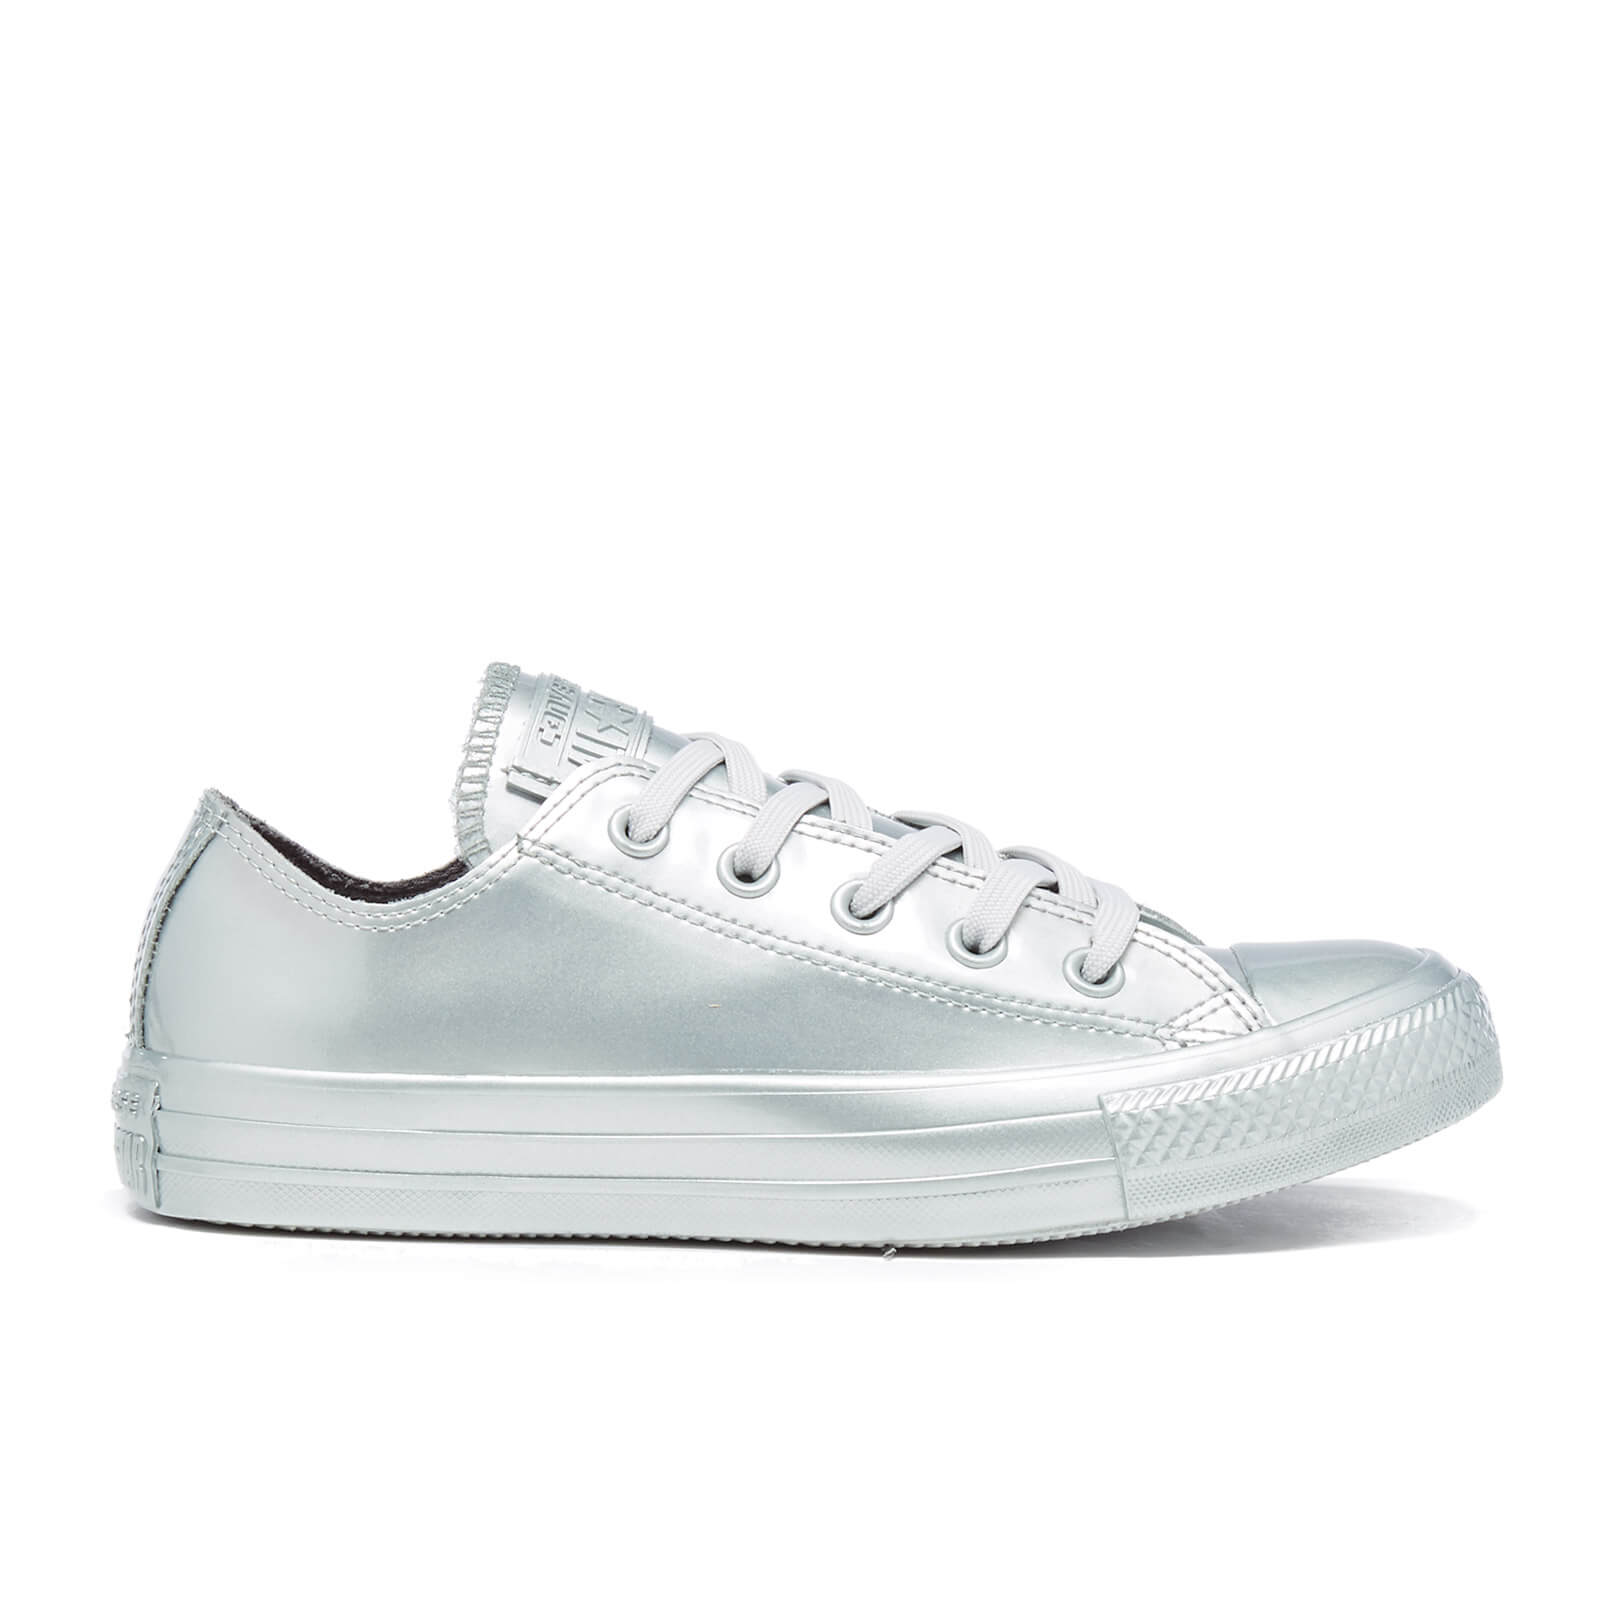 7368281ef96c Converse Women s Chuck Taylor All Star Metallic Rubber Ox Trainers - Pure  SIlver Pure Silver Pure Silver - Free UK Delivery over £50